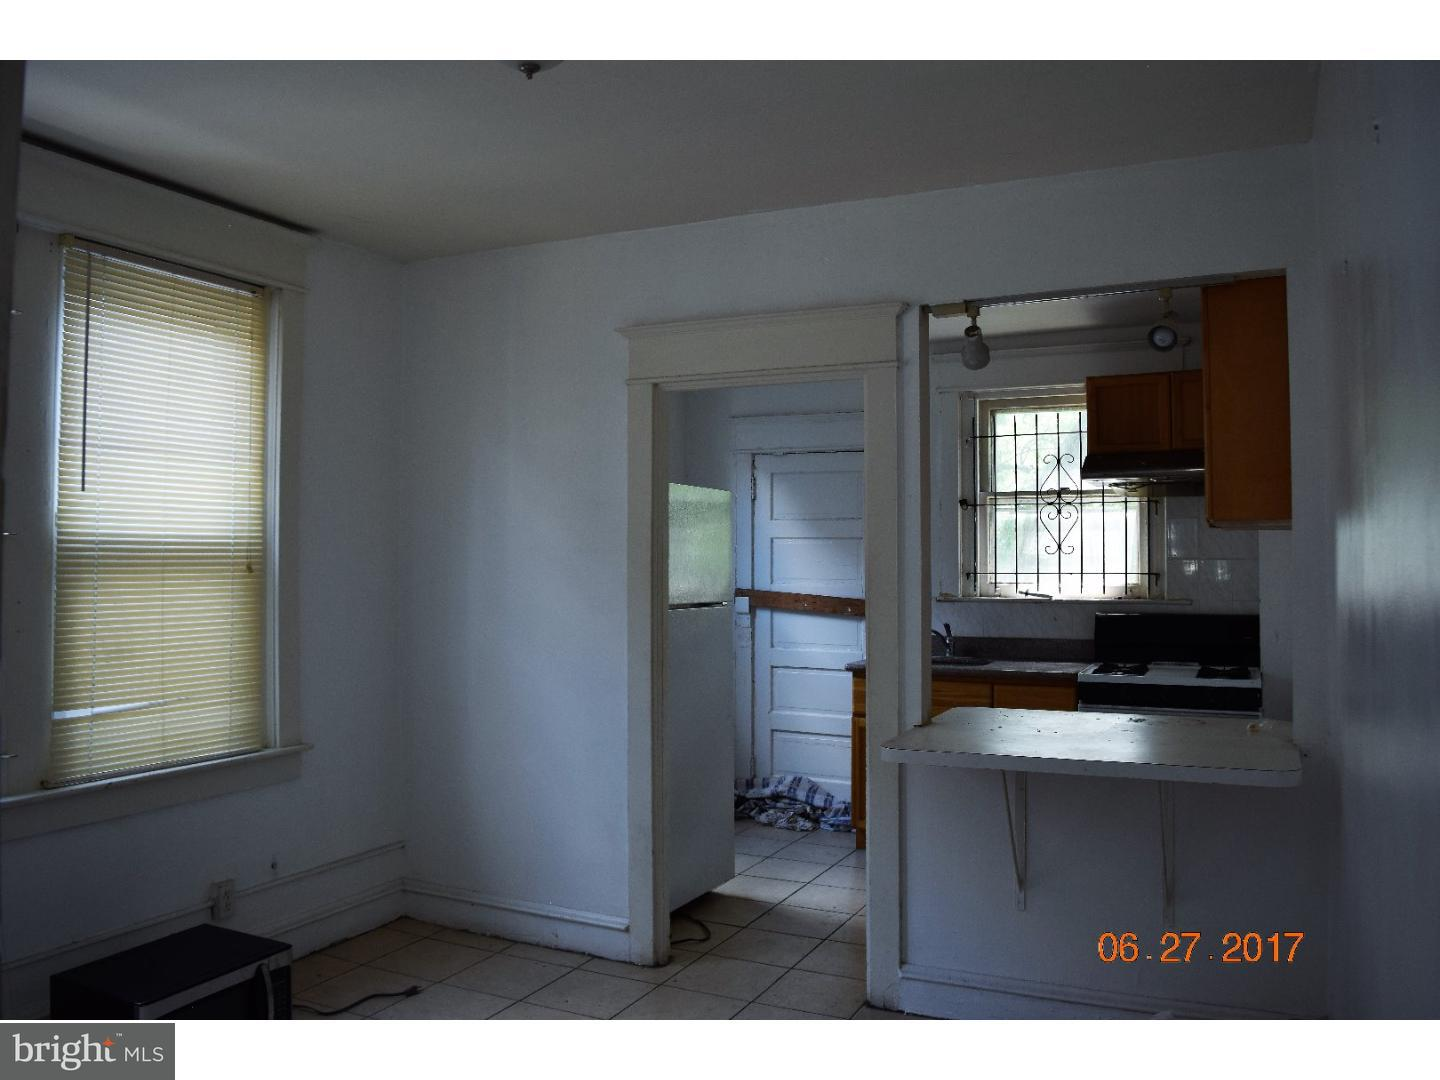 856 MAIN ST, DARBY - Listed at $125,000, DARBY